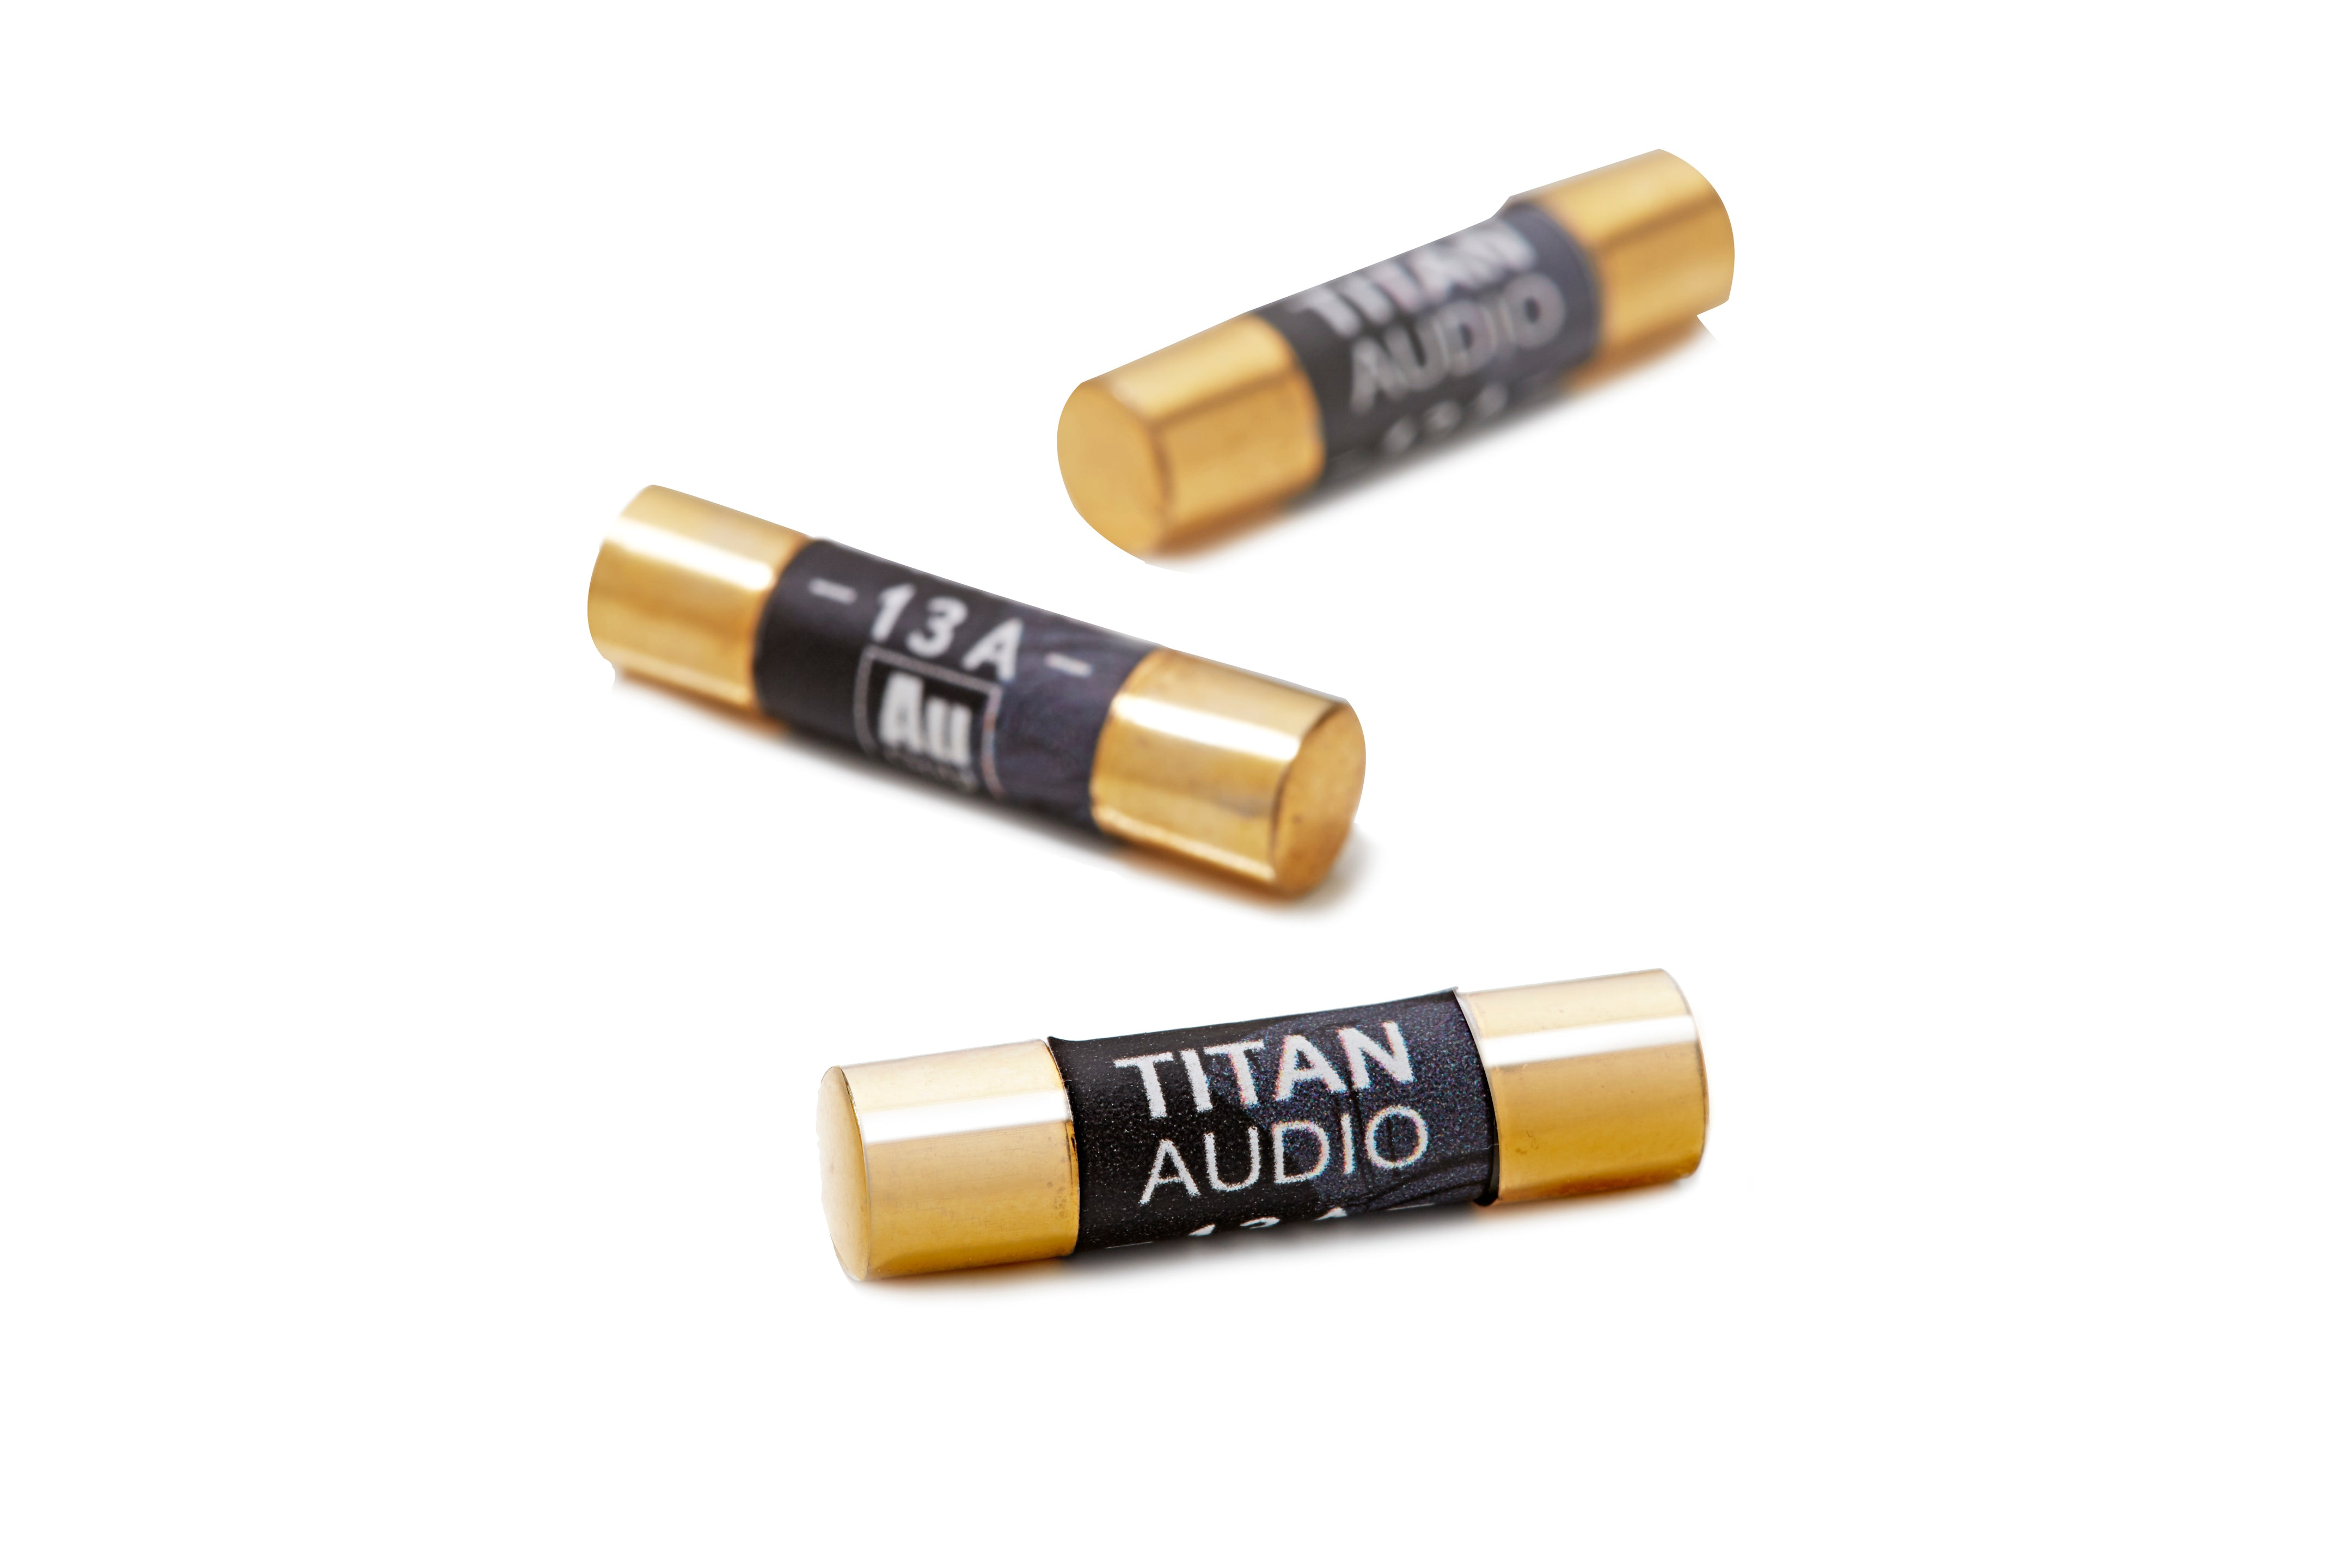 Titan Audio Gold Plated Audio Grade Fuses 13a